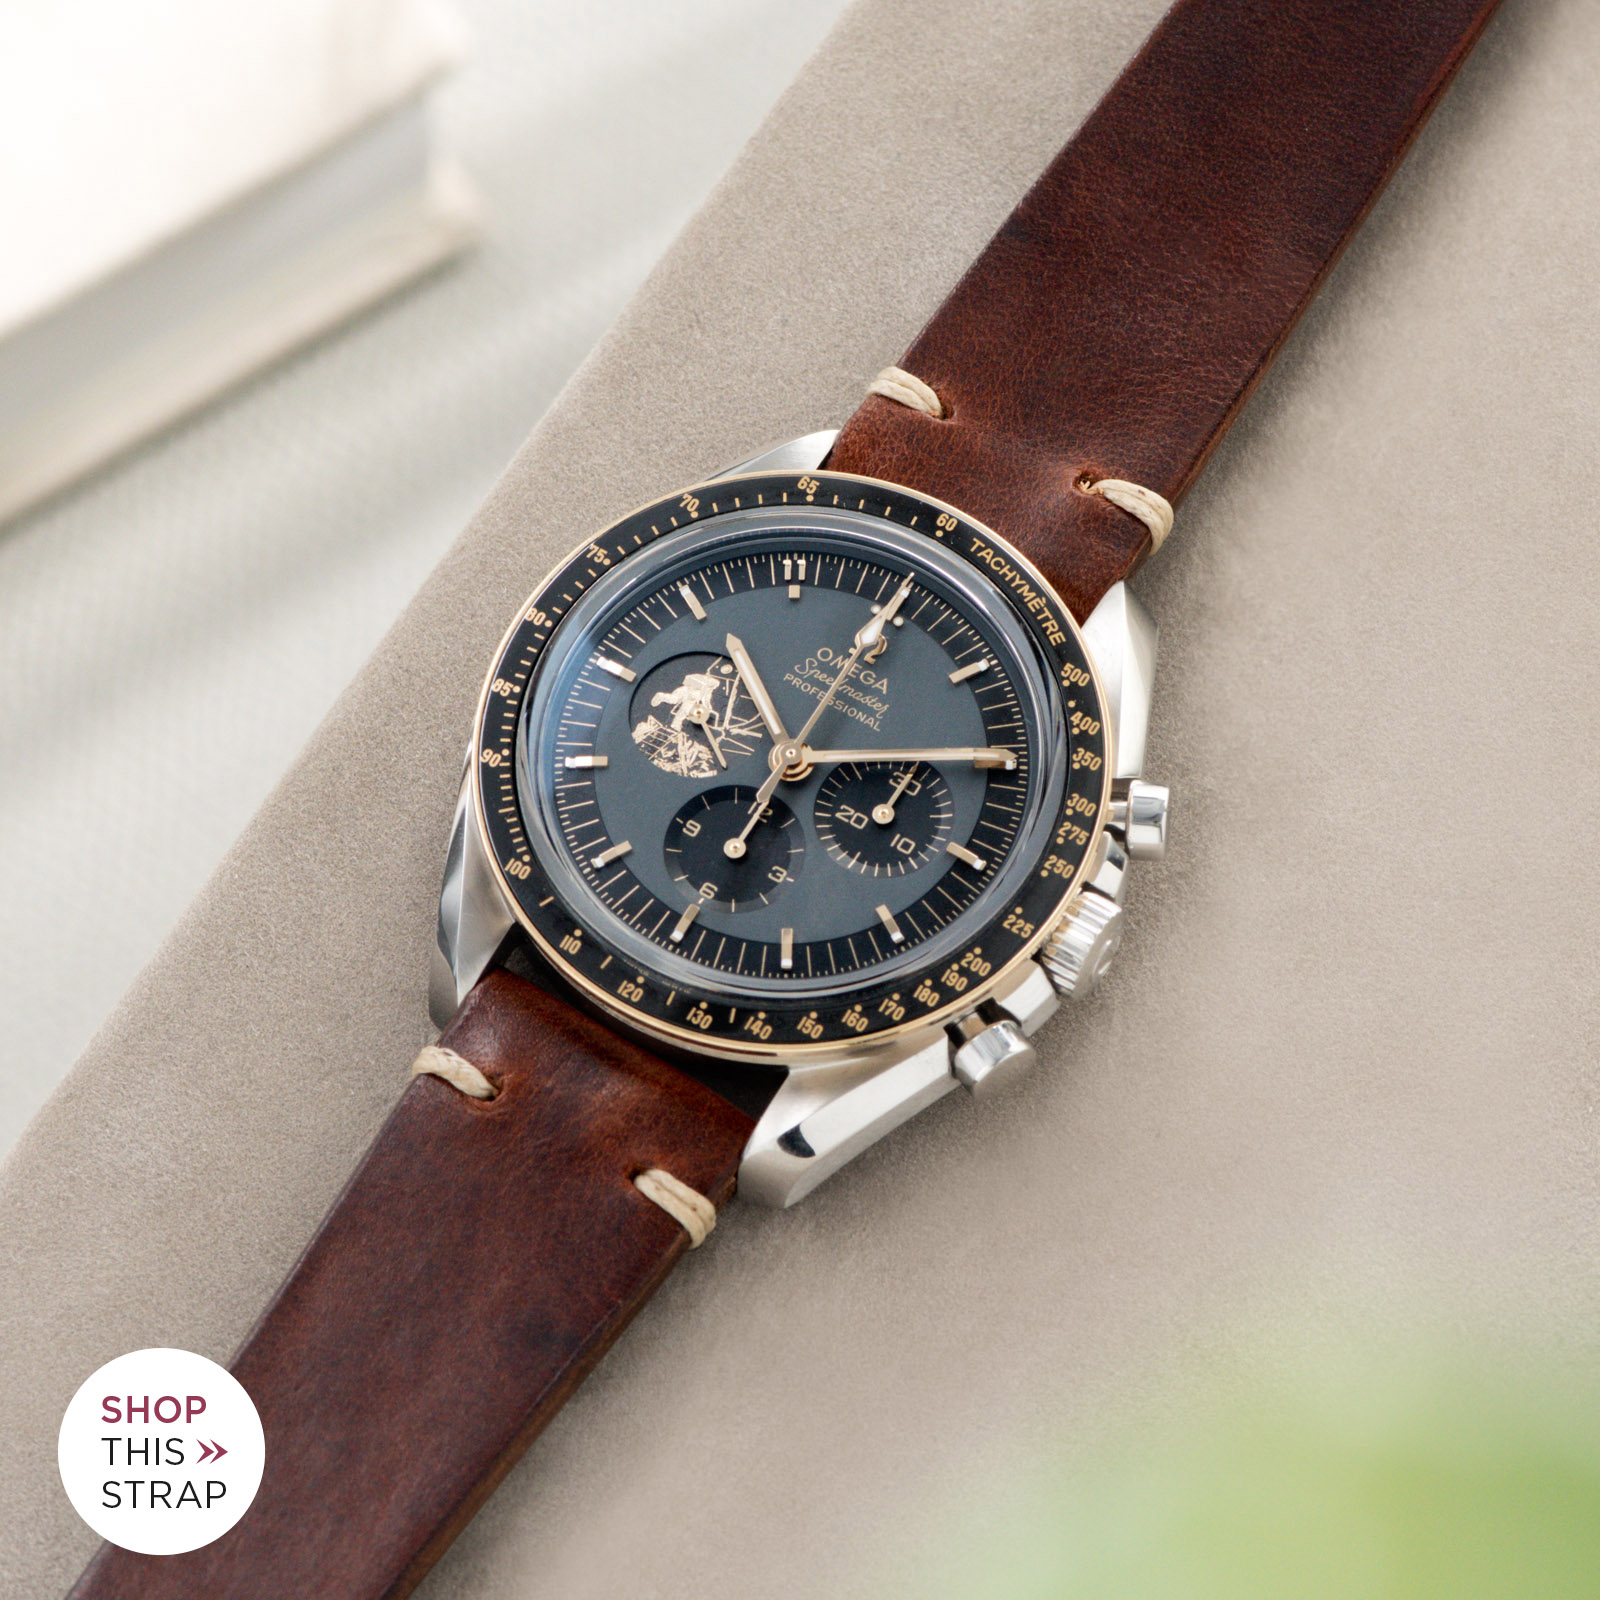 Bulang and Sons_Strapguide_Siena Brown Leather Watch Strap